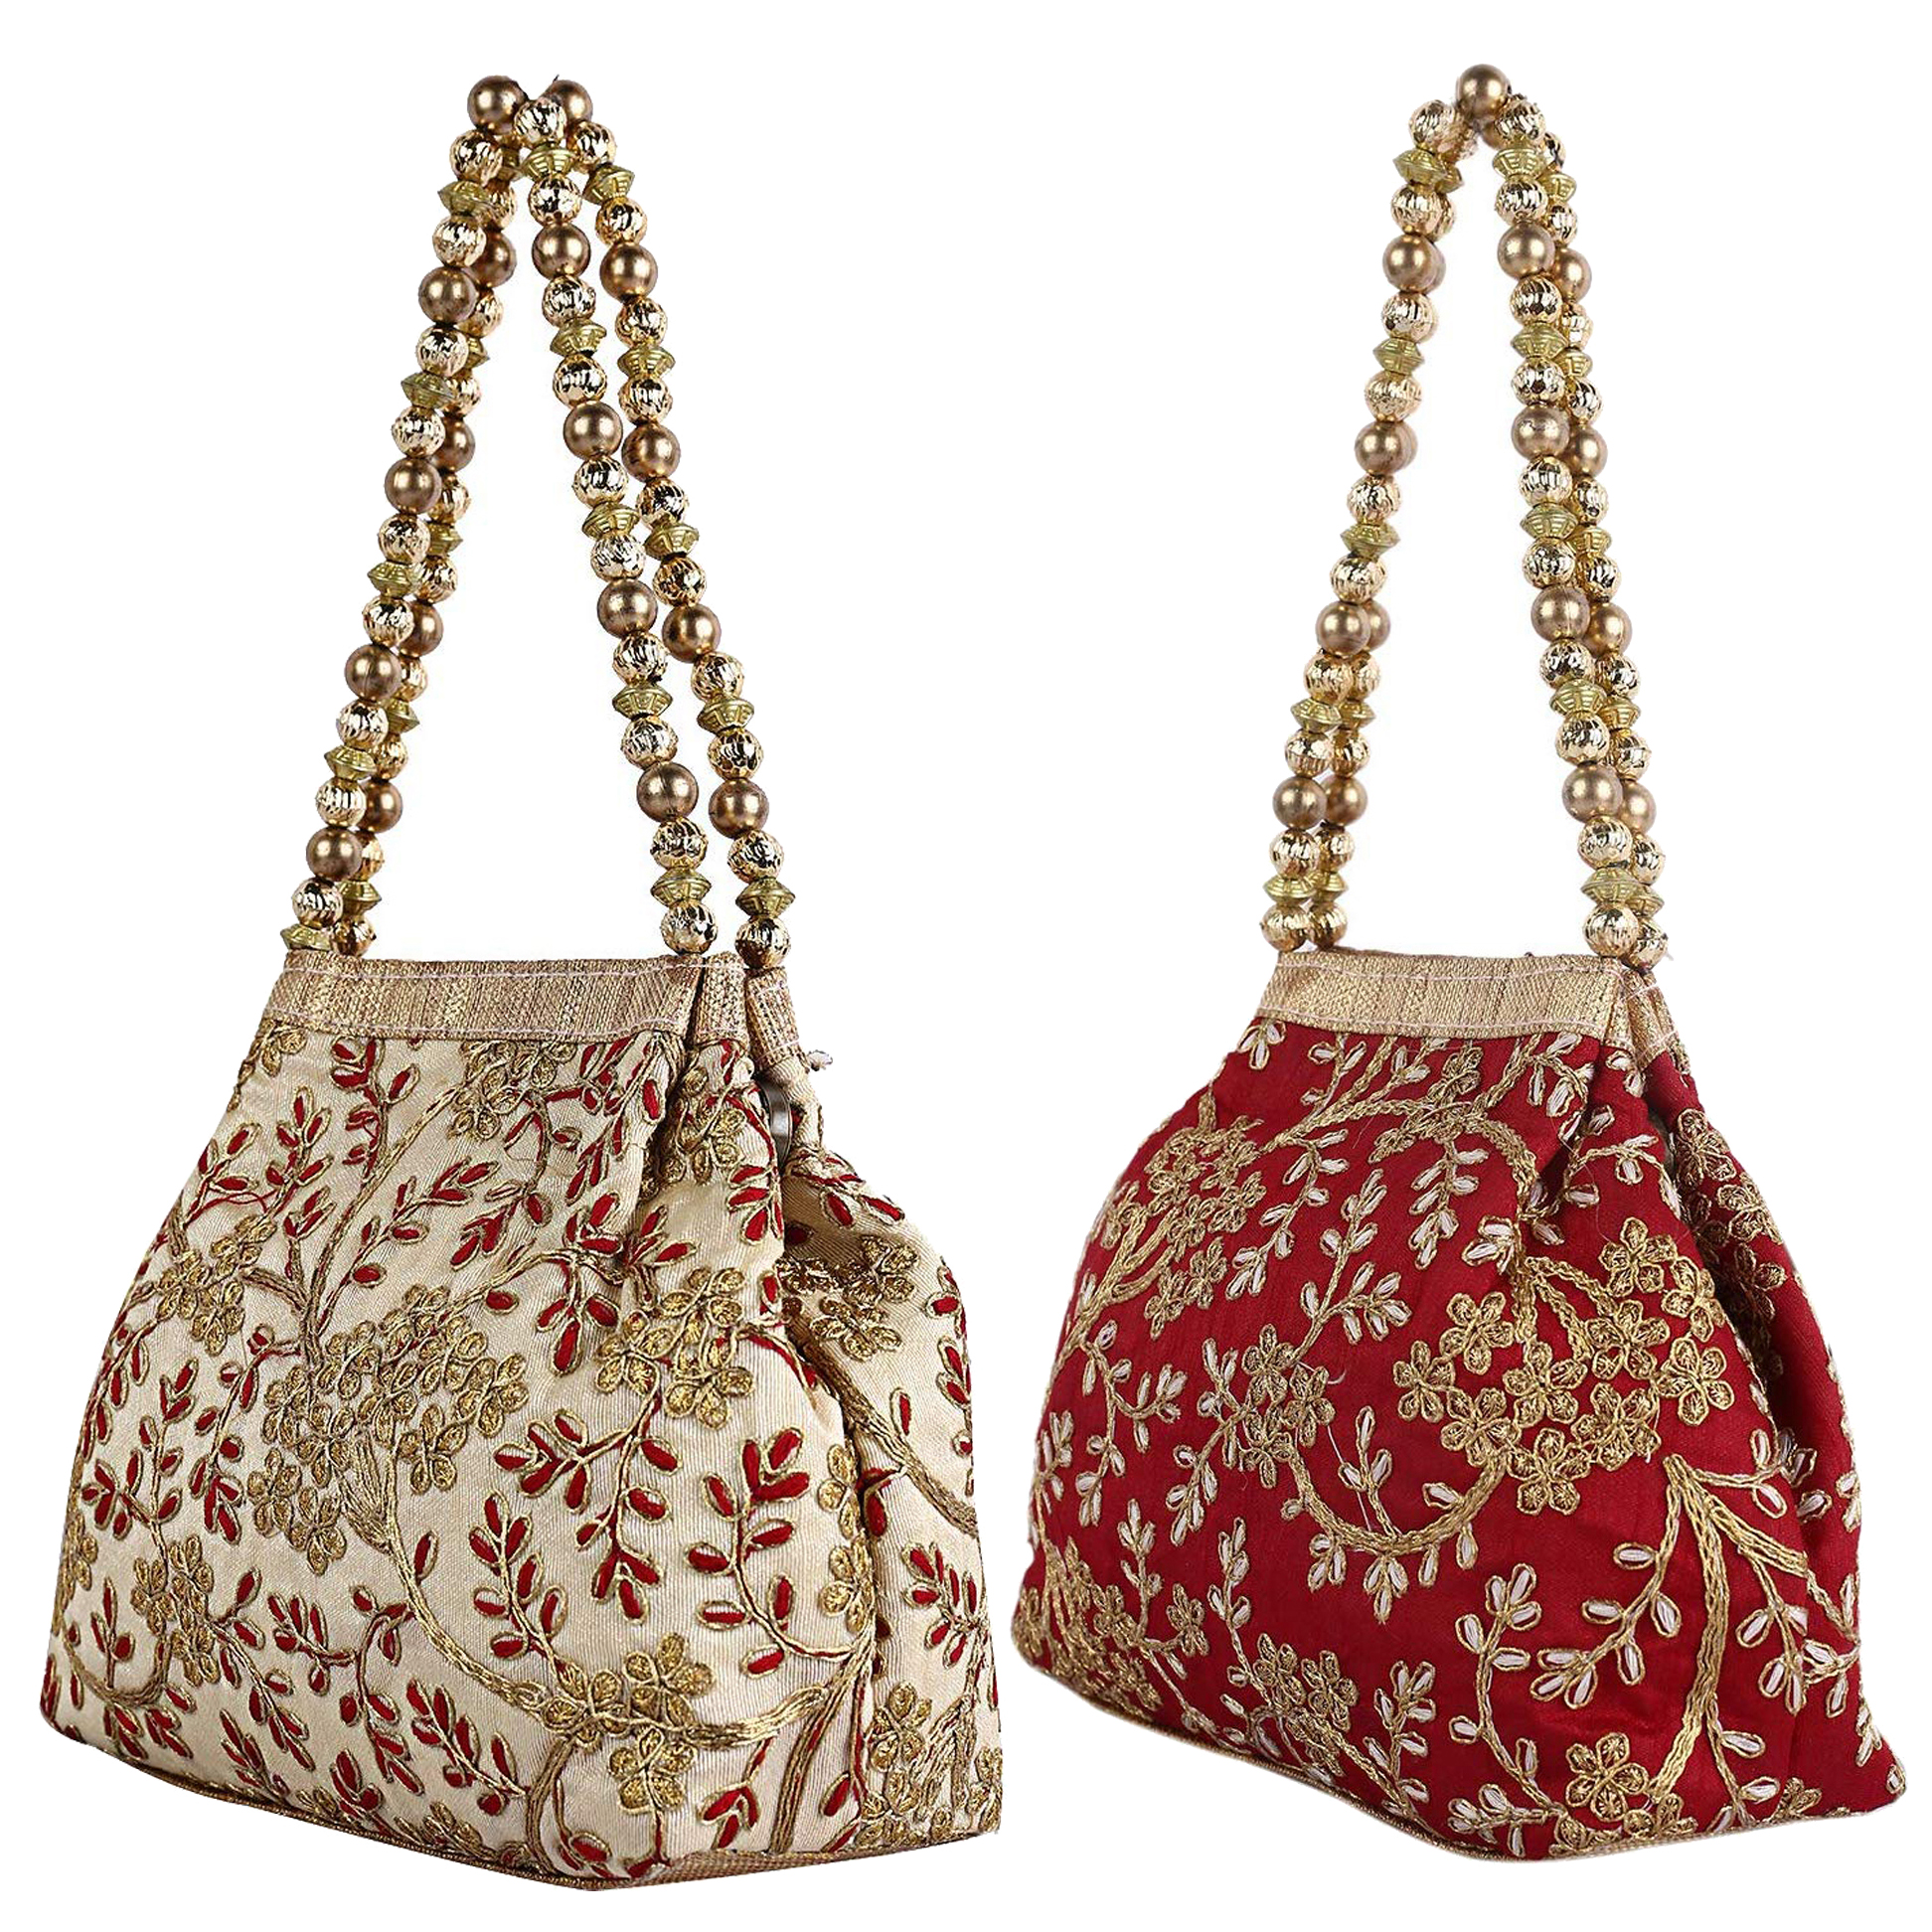 Kuber Industries 2 Pieces Polyester Embroidered Woman Potli Bag, Maroon & Cream - CTKTC31401